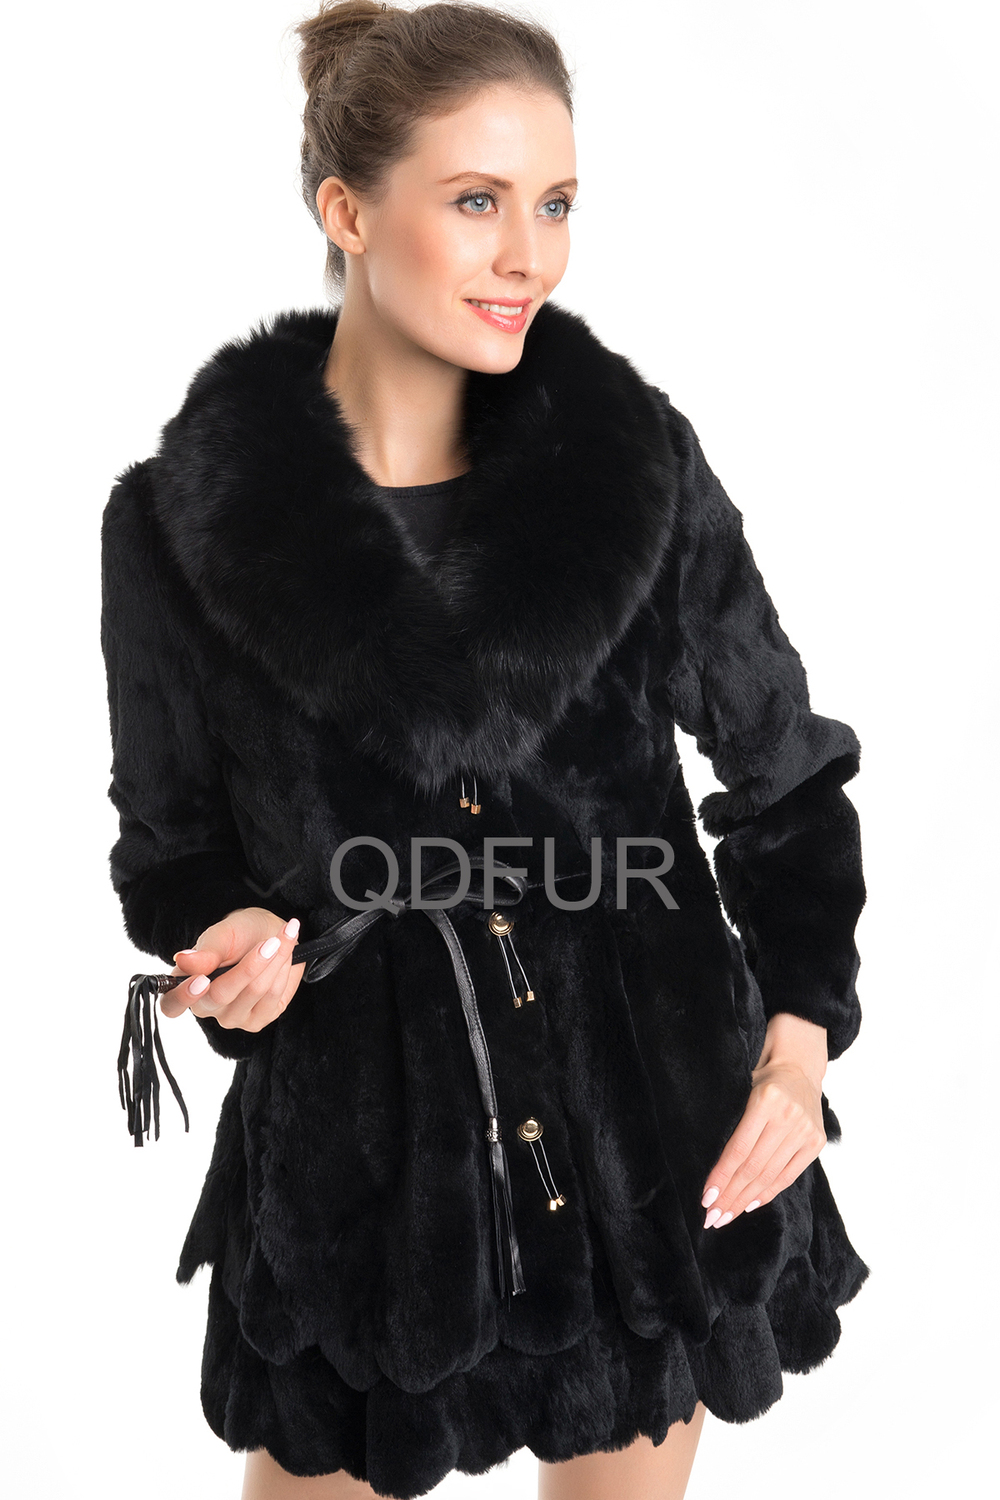 QD70715 Korean Style Women Clothing Rex Rabbit Fur Coat With Dyed Blue Fox Fur Collar